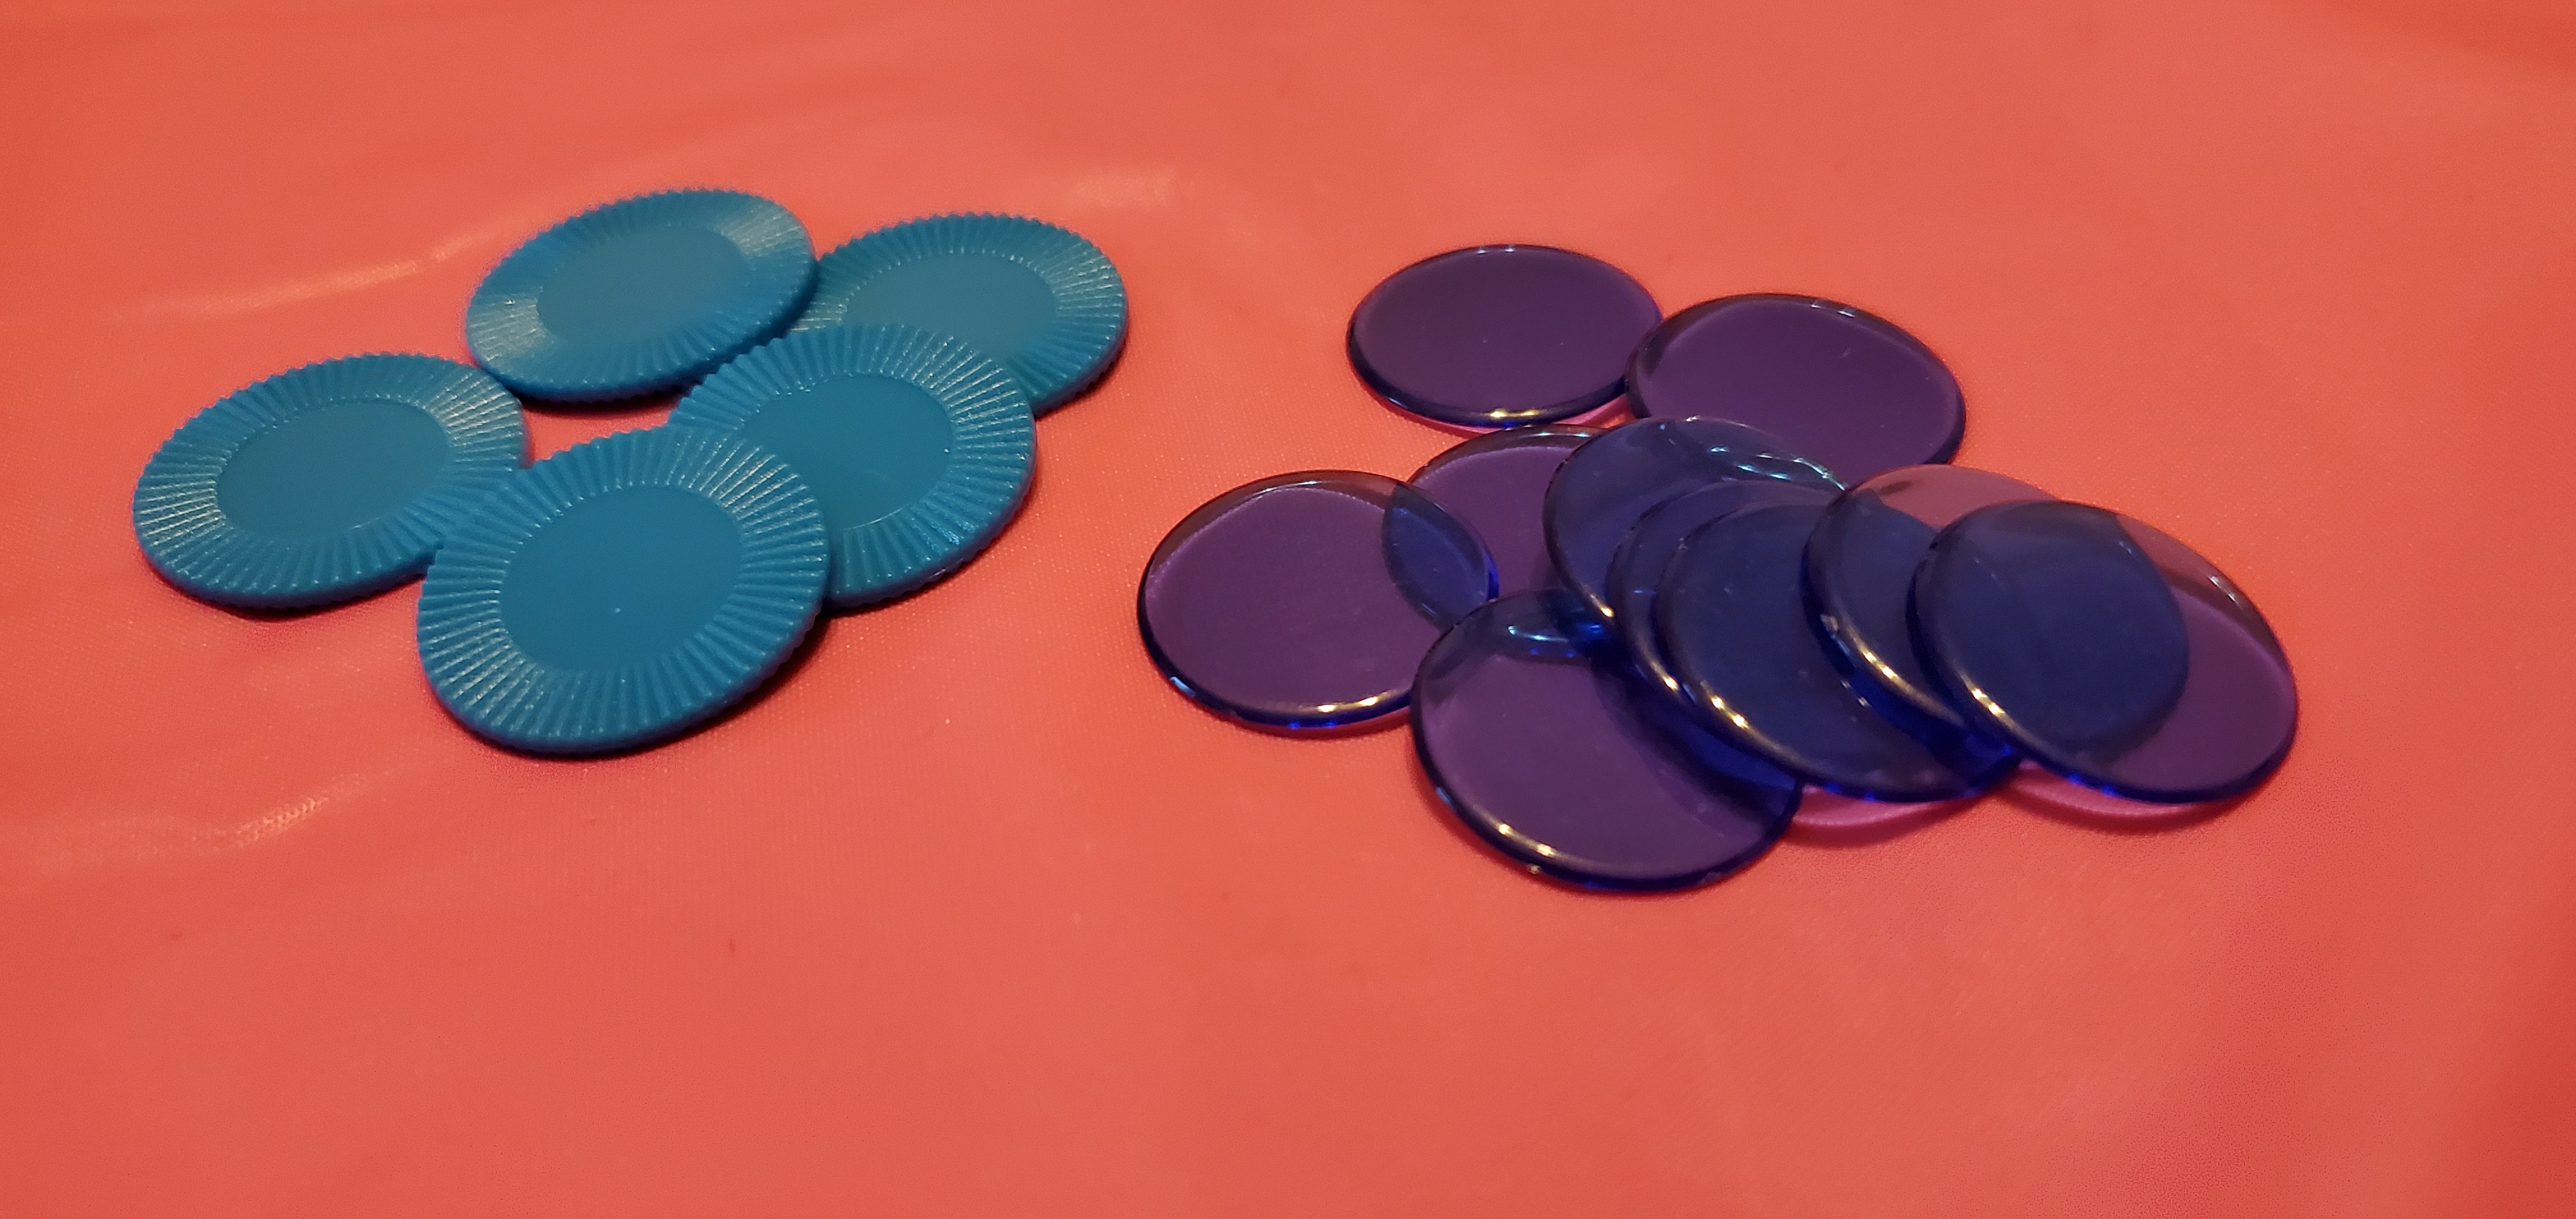 Selection of gaming discs and mini chips.